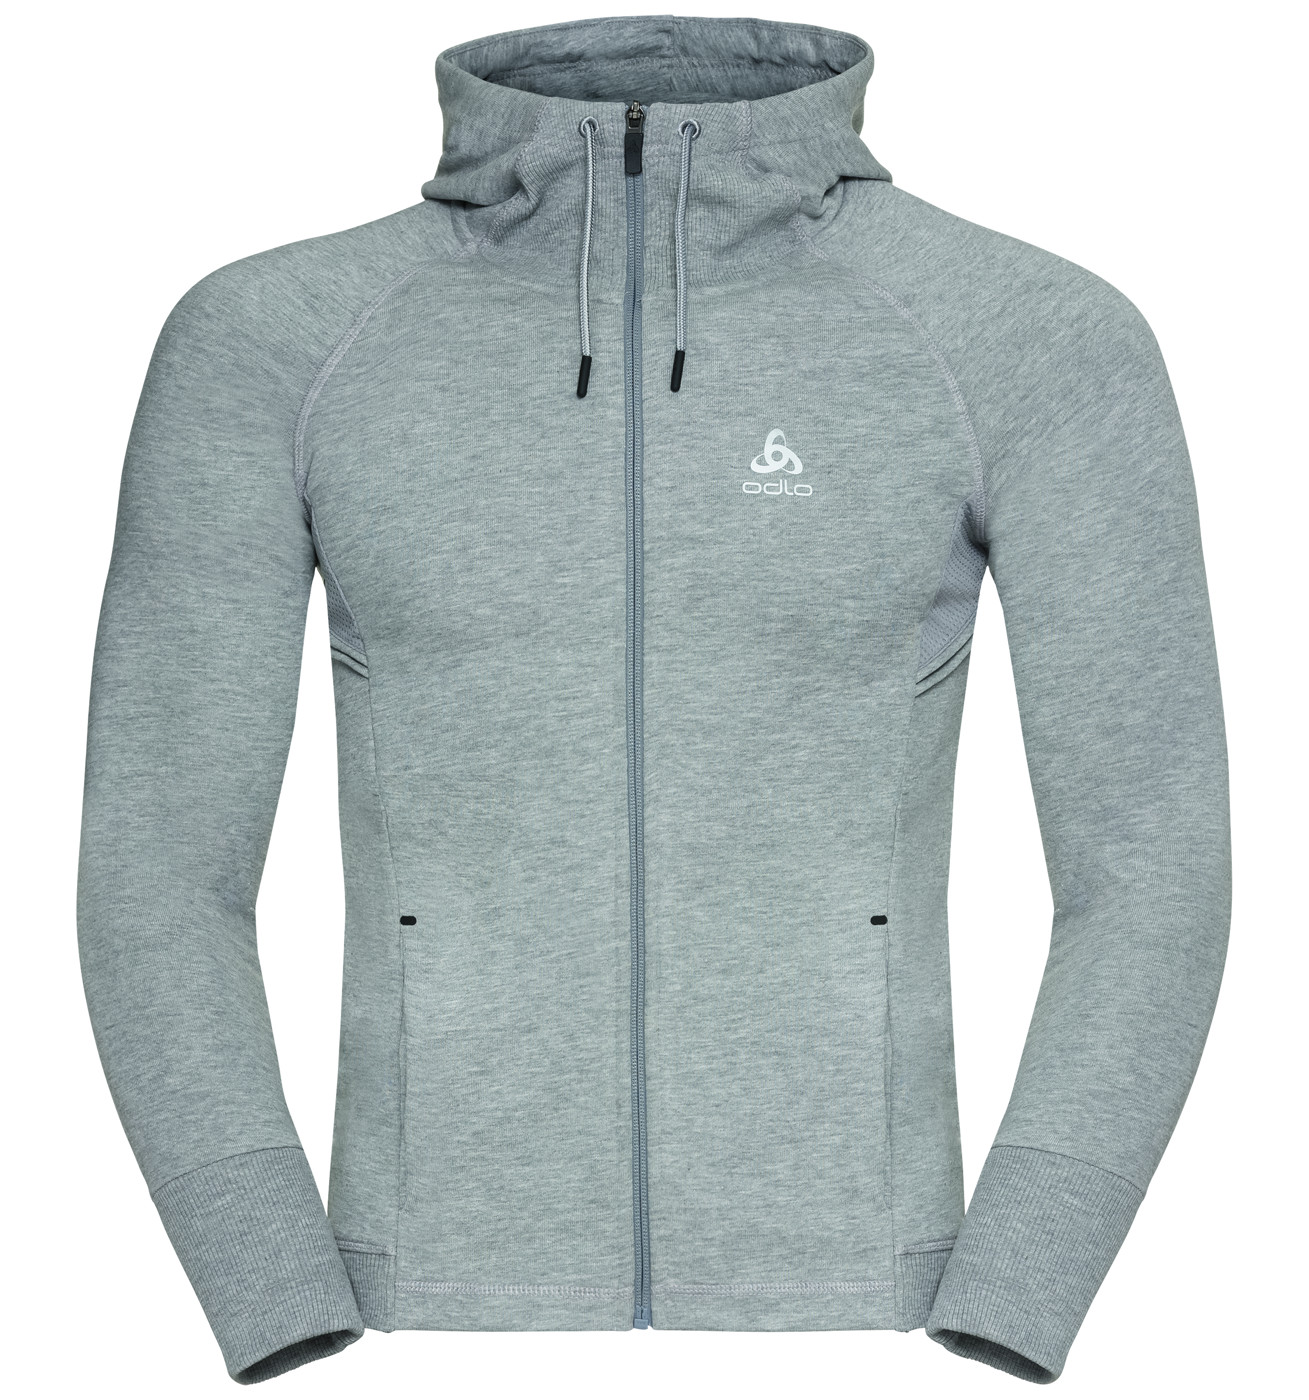 ODLO Hoody midlayer full zip TECHST - Damen